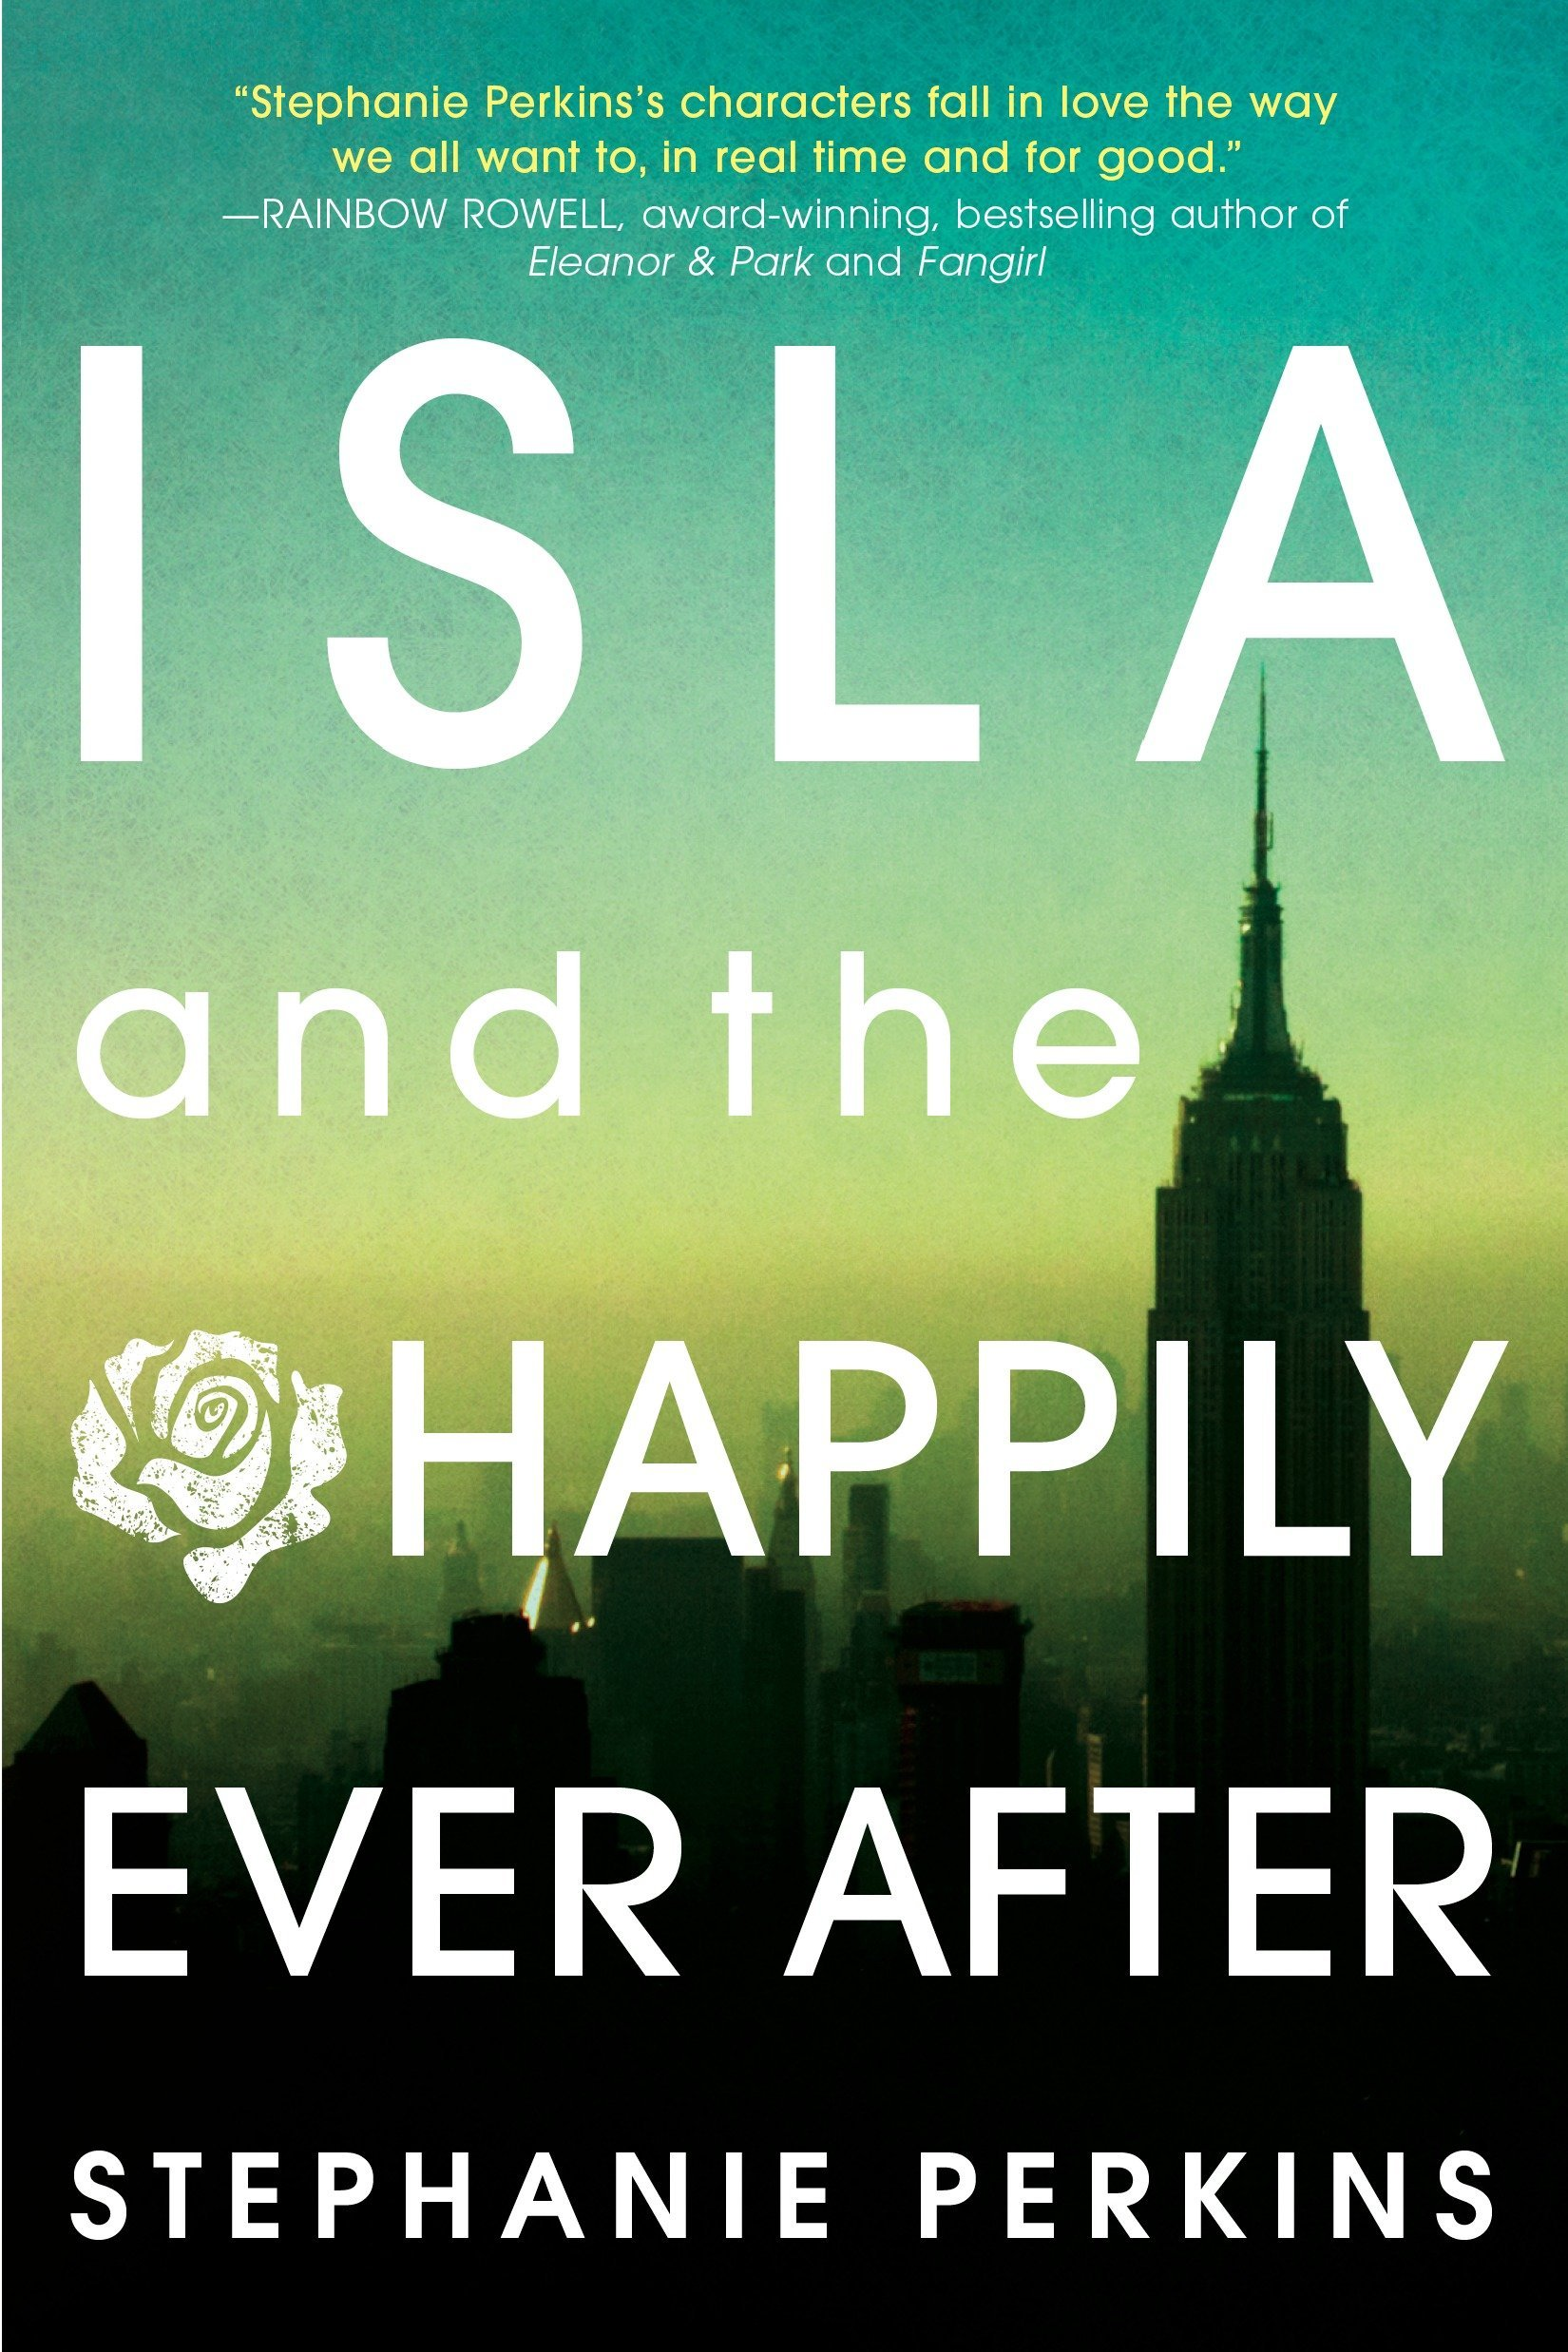 Amazon.com: Isla and the Happily Ever After (9780142426272): Perkins,  Stephanie: Books